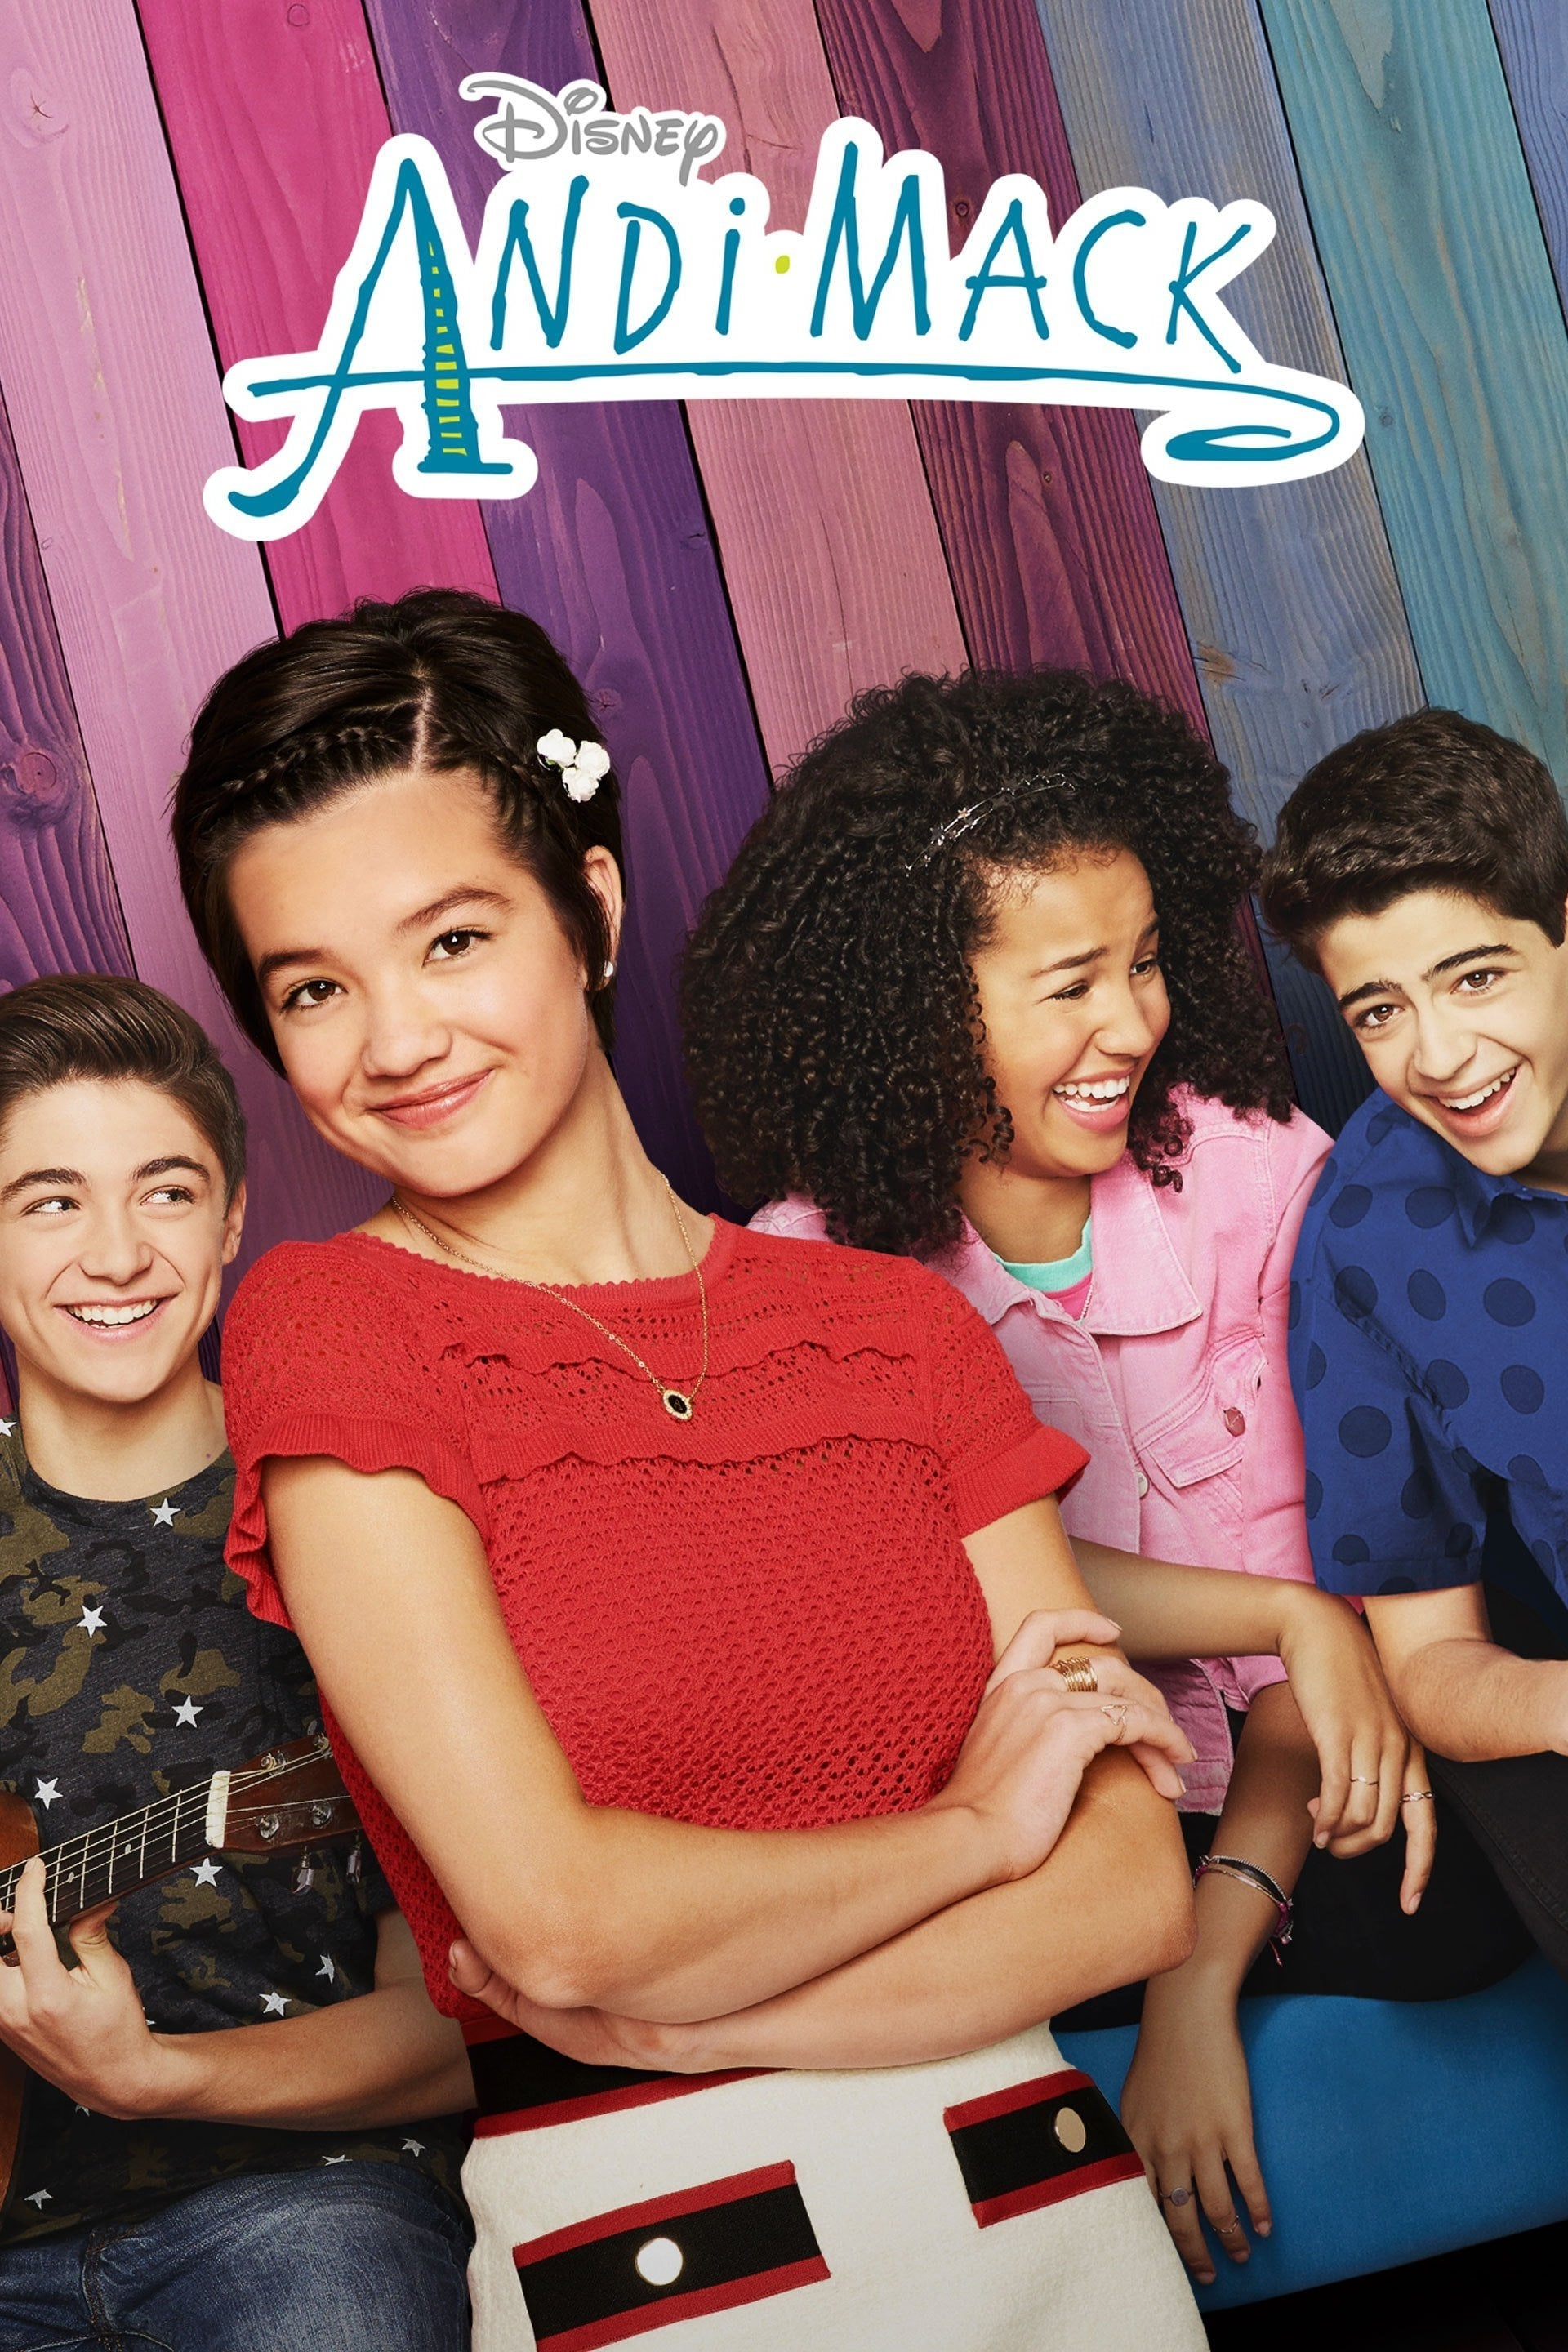 Andi Mack Season 3